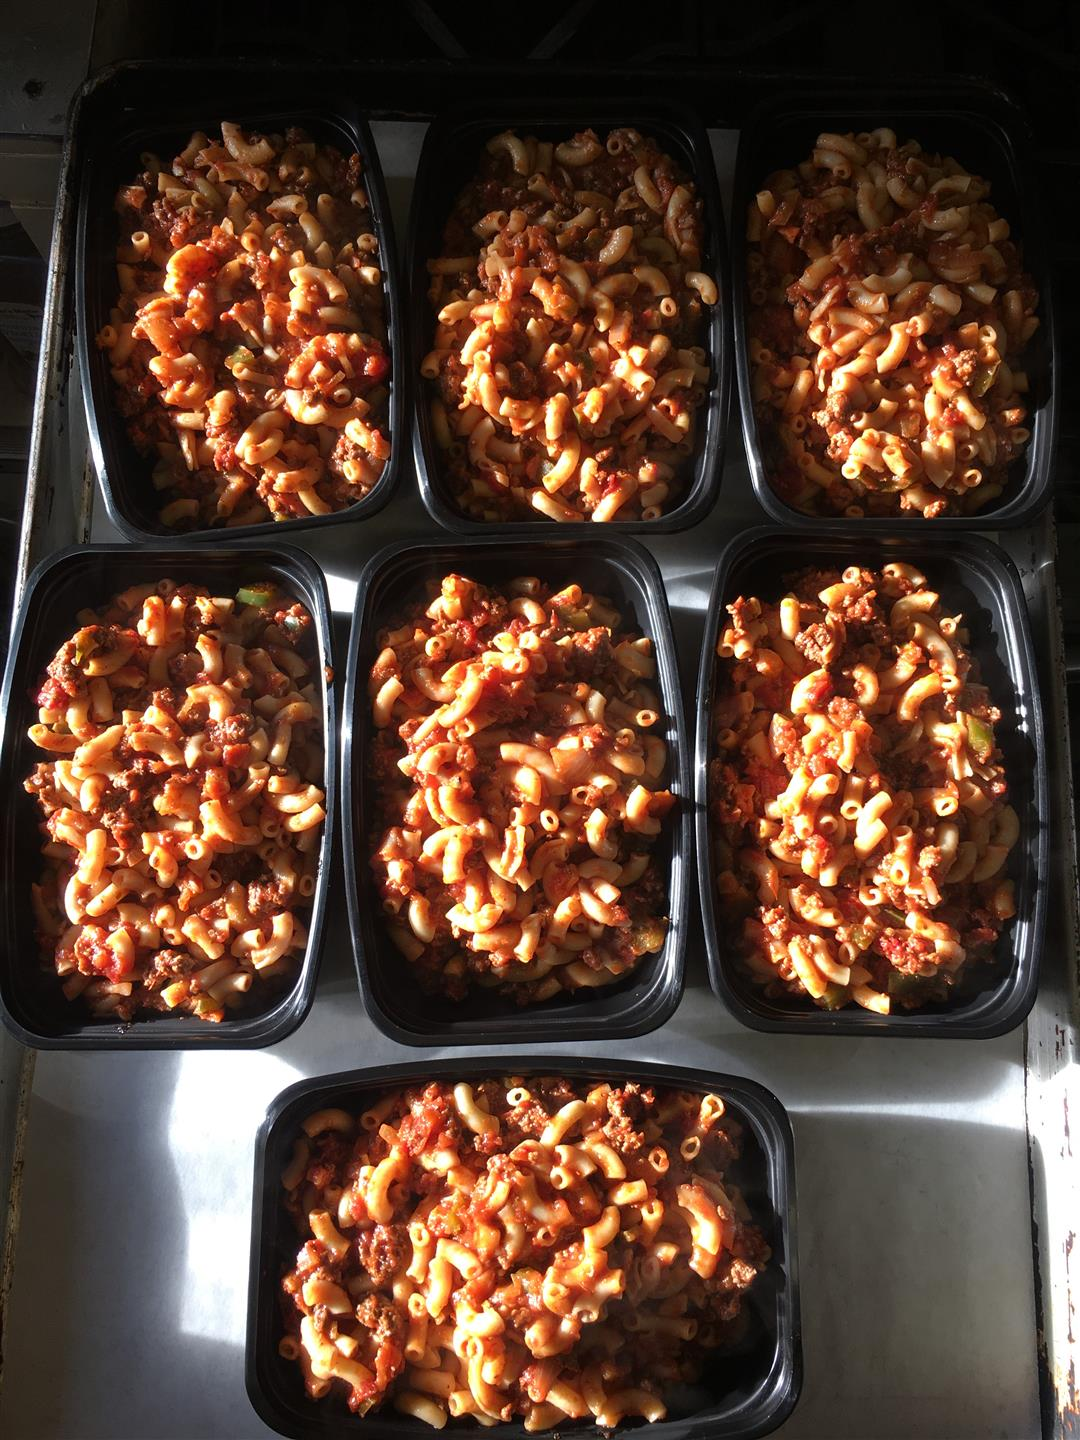 takeout containers of pasta with meat sauce